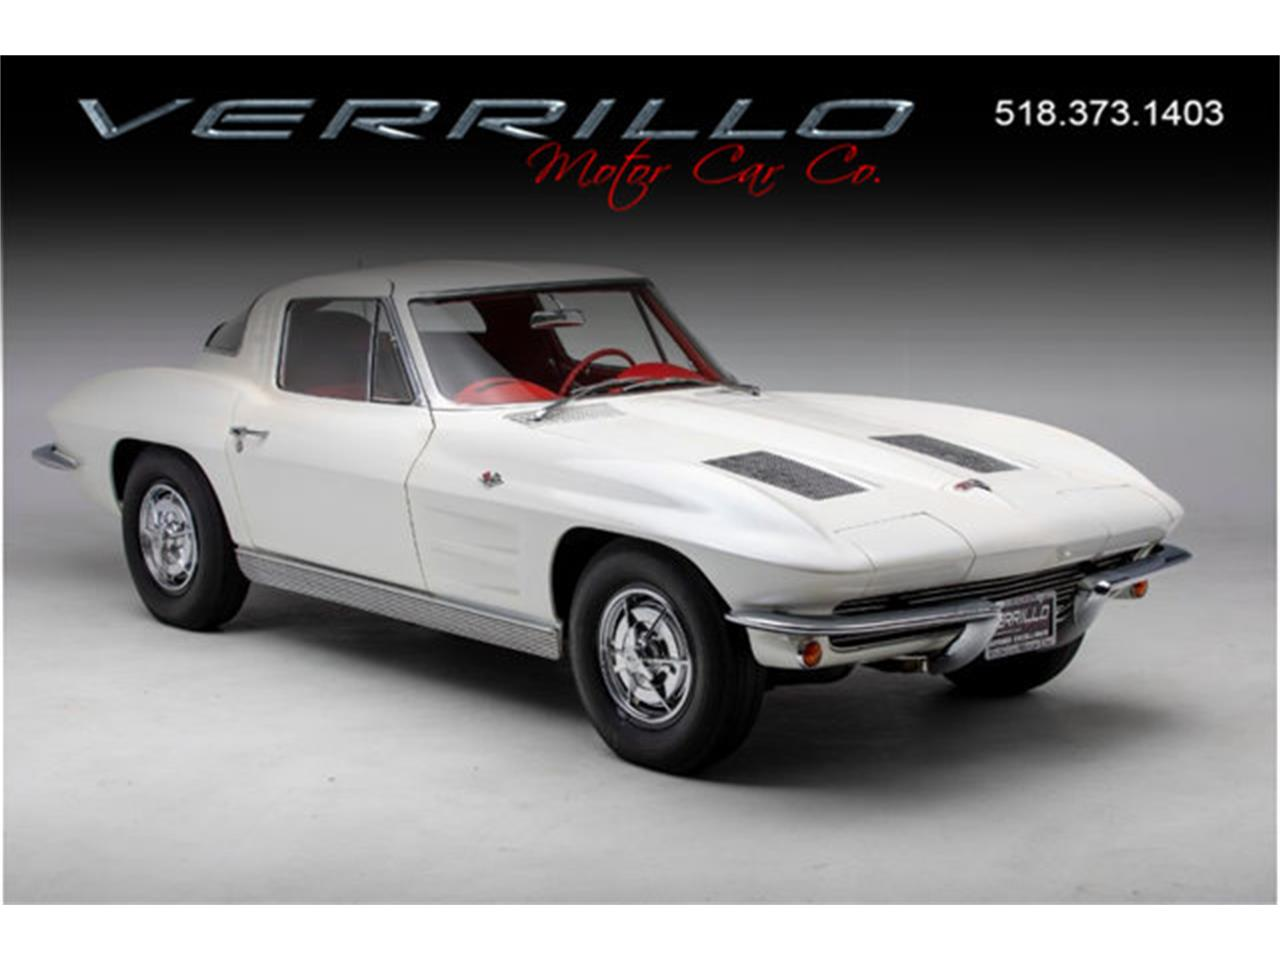 Large Picture of 1963 Corvette - $139,999.00 Offered by Prestige Motor Car Co. - QOXV